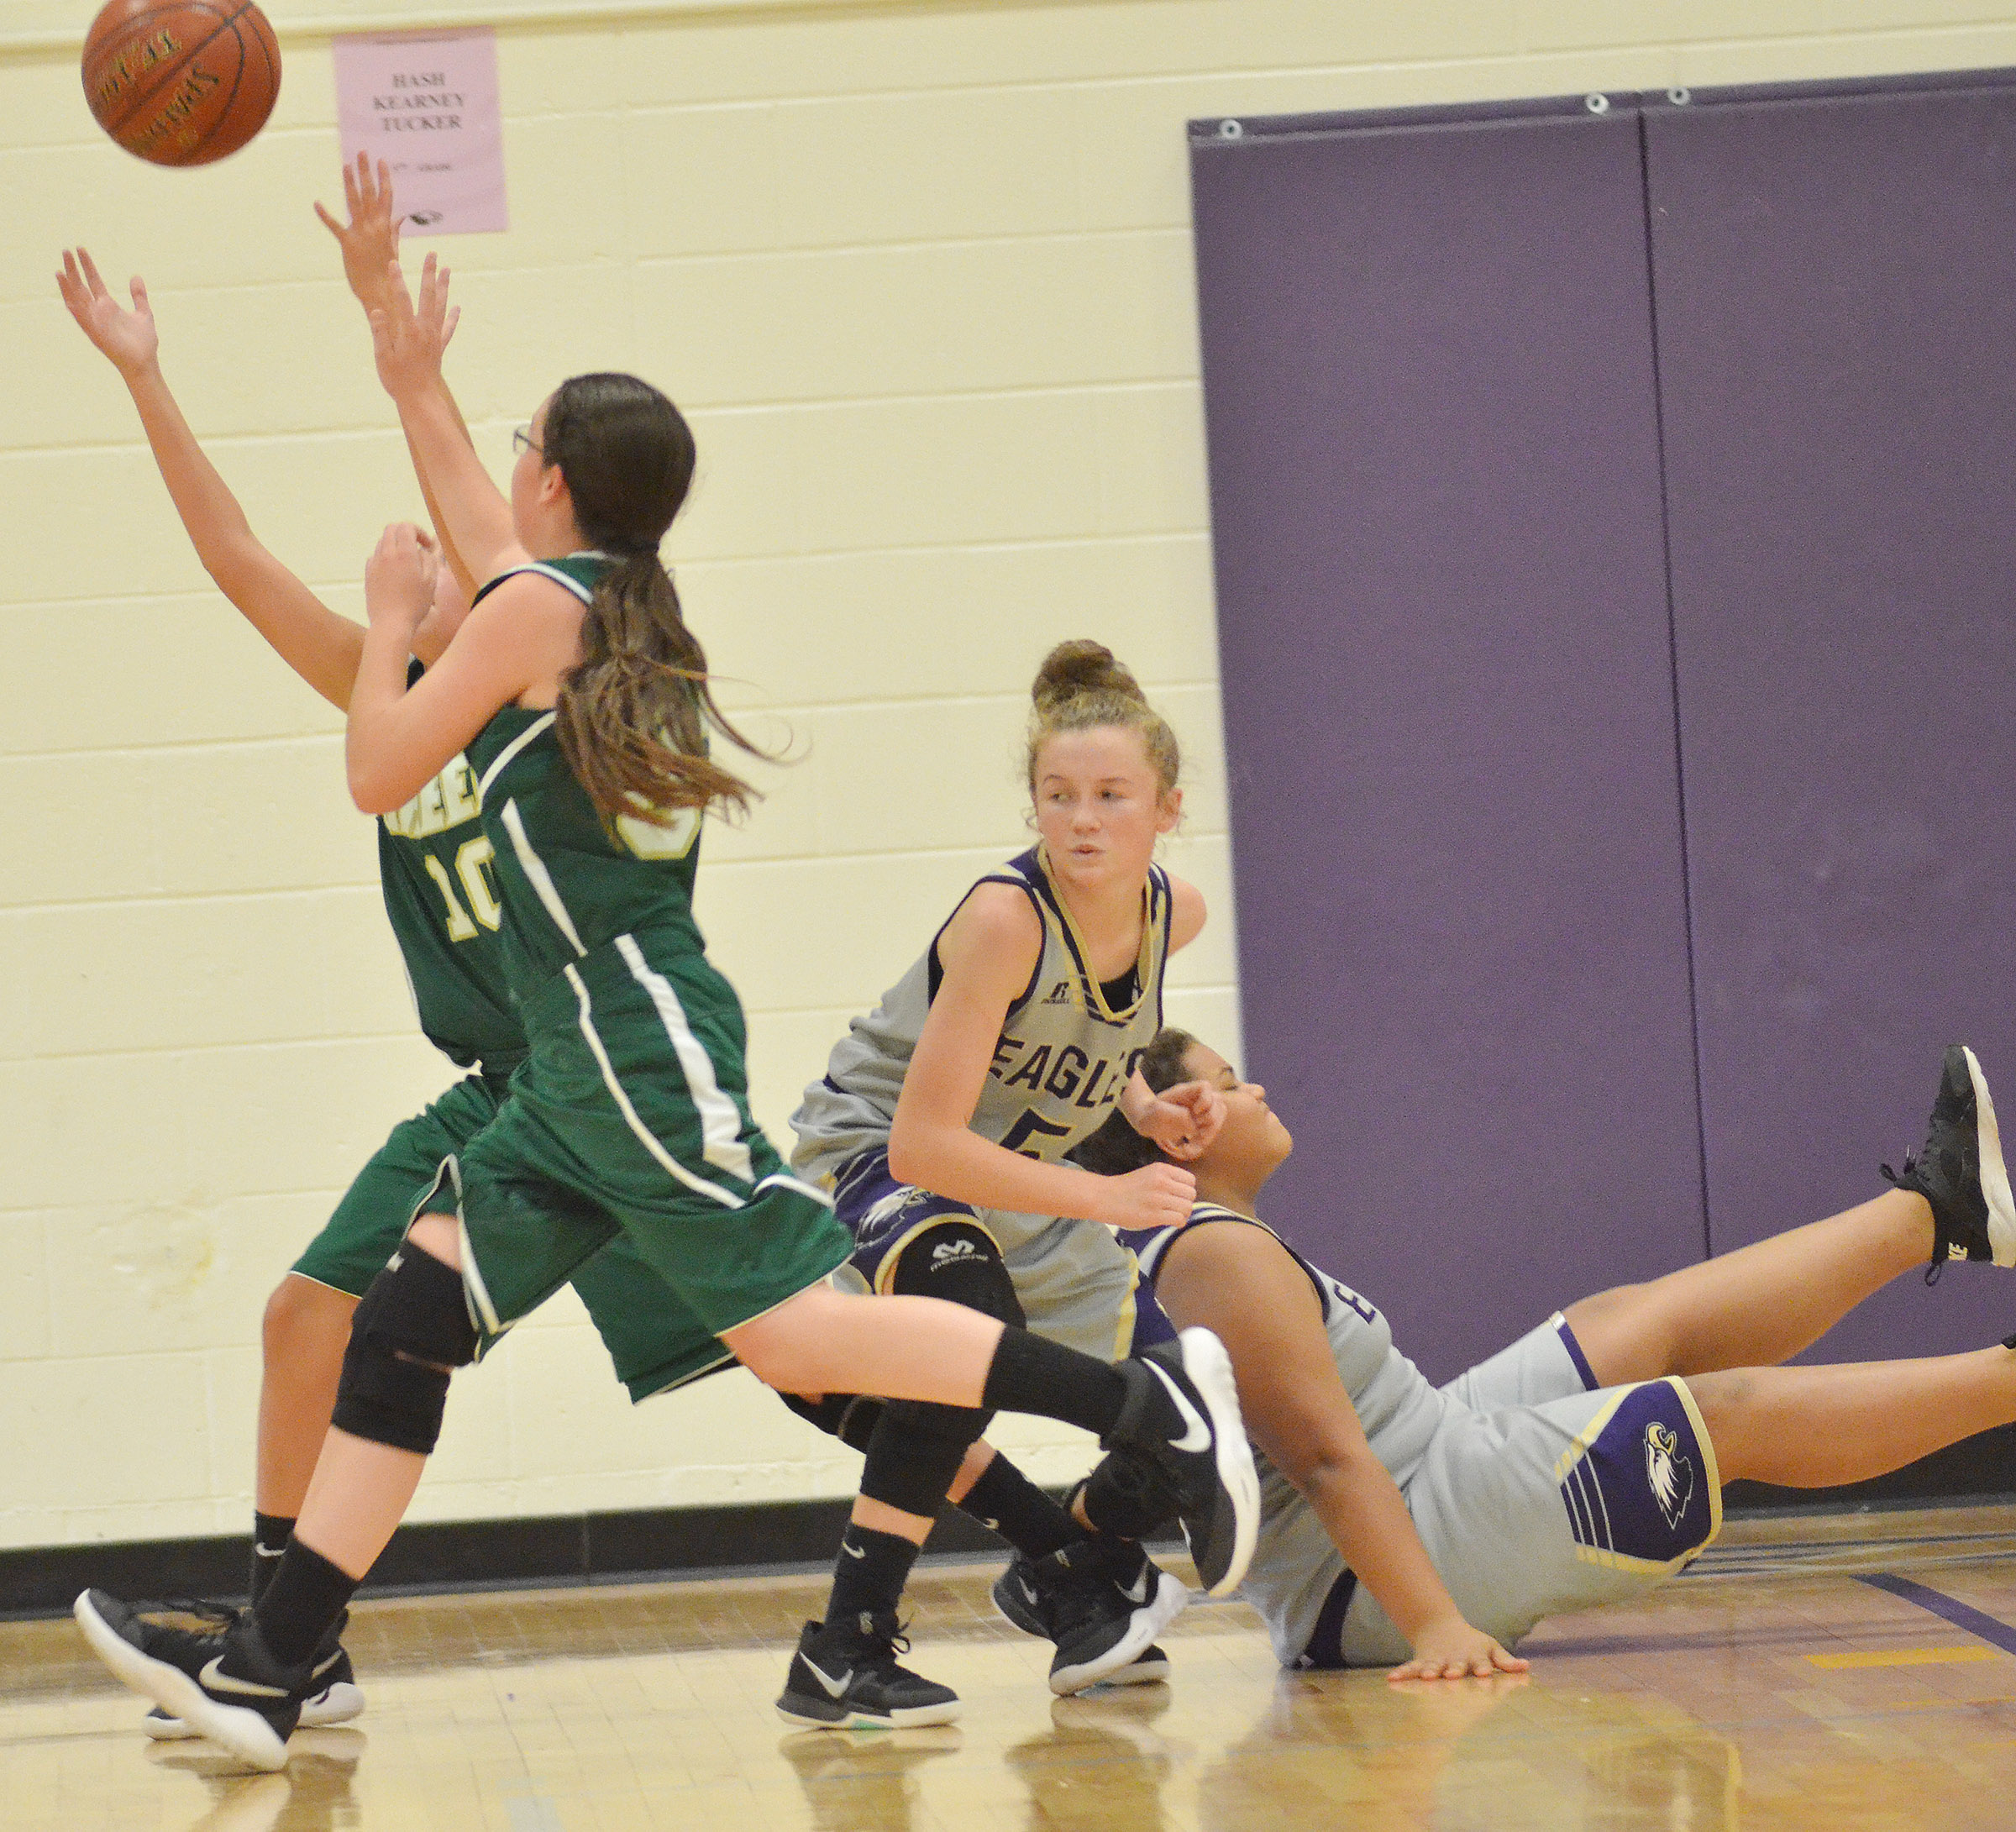 CMS seventh-graders Dakota Slone, at left, and Asia Barbour battle for the ball.